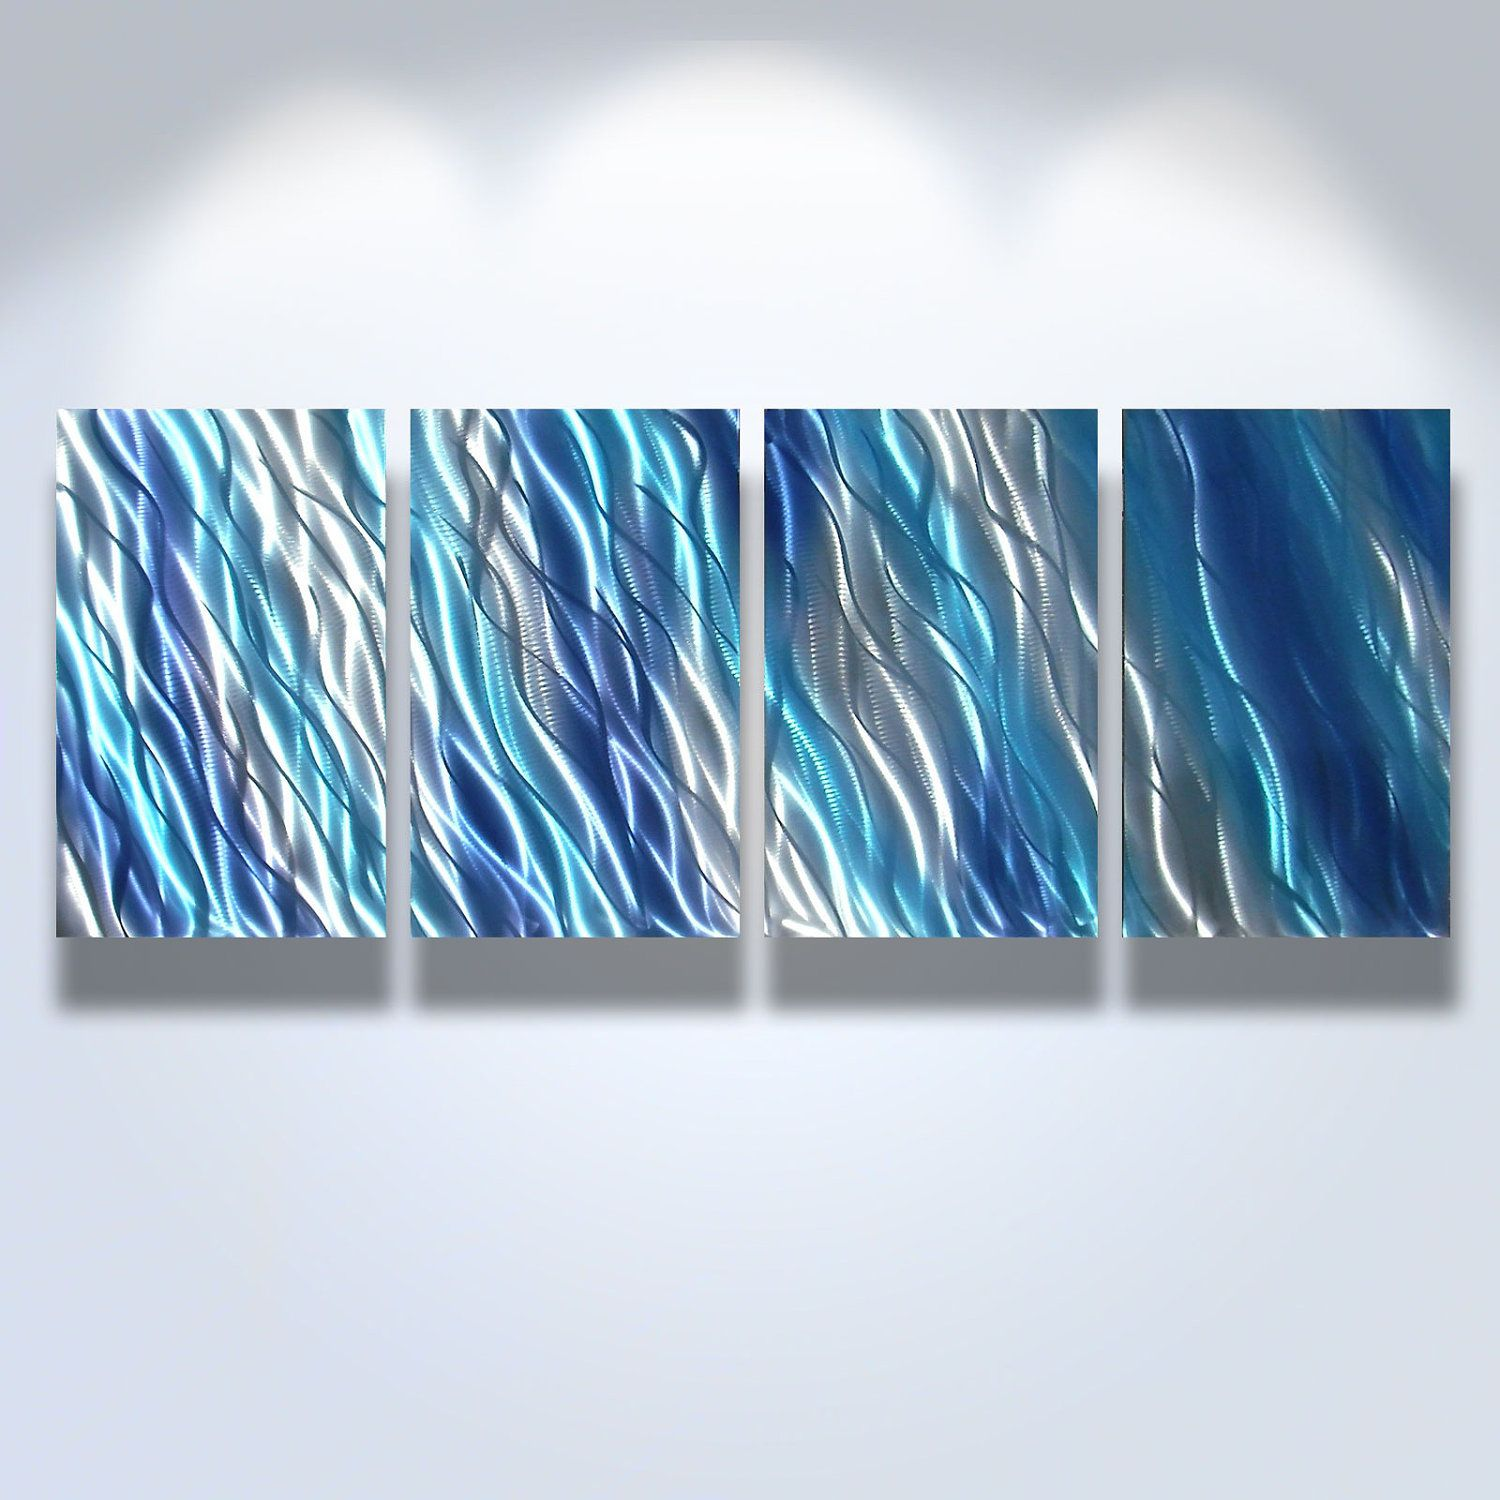 Blue Metal Wall Art Gorgeous Metal Wall Art Decor Abstract Contemporary Modern Sculpture Decorating Design